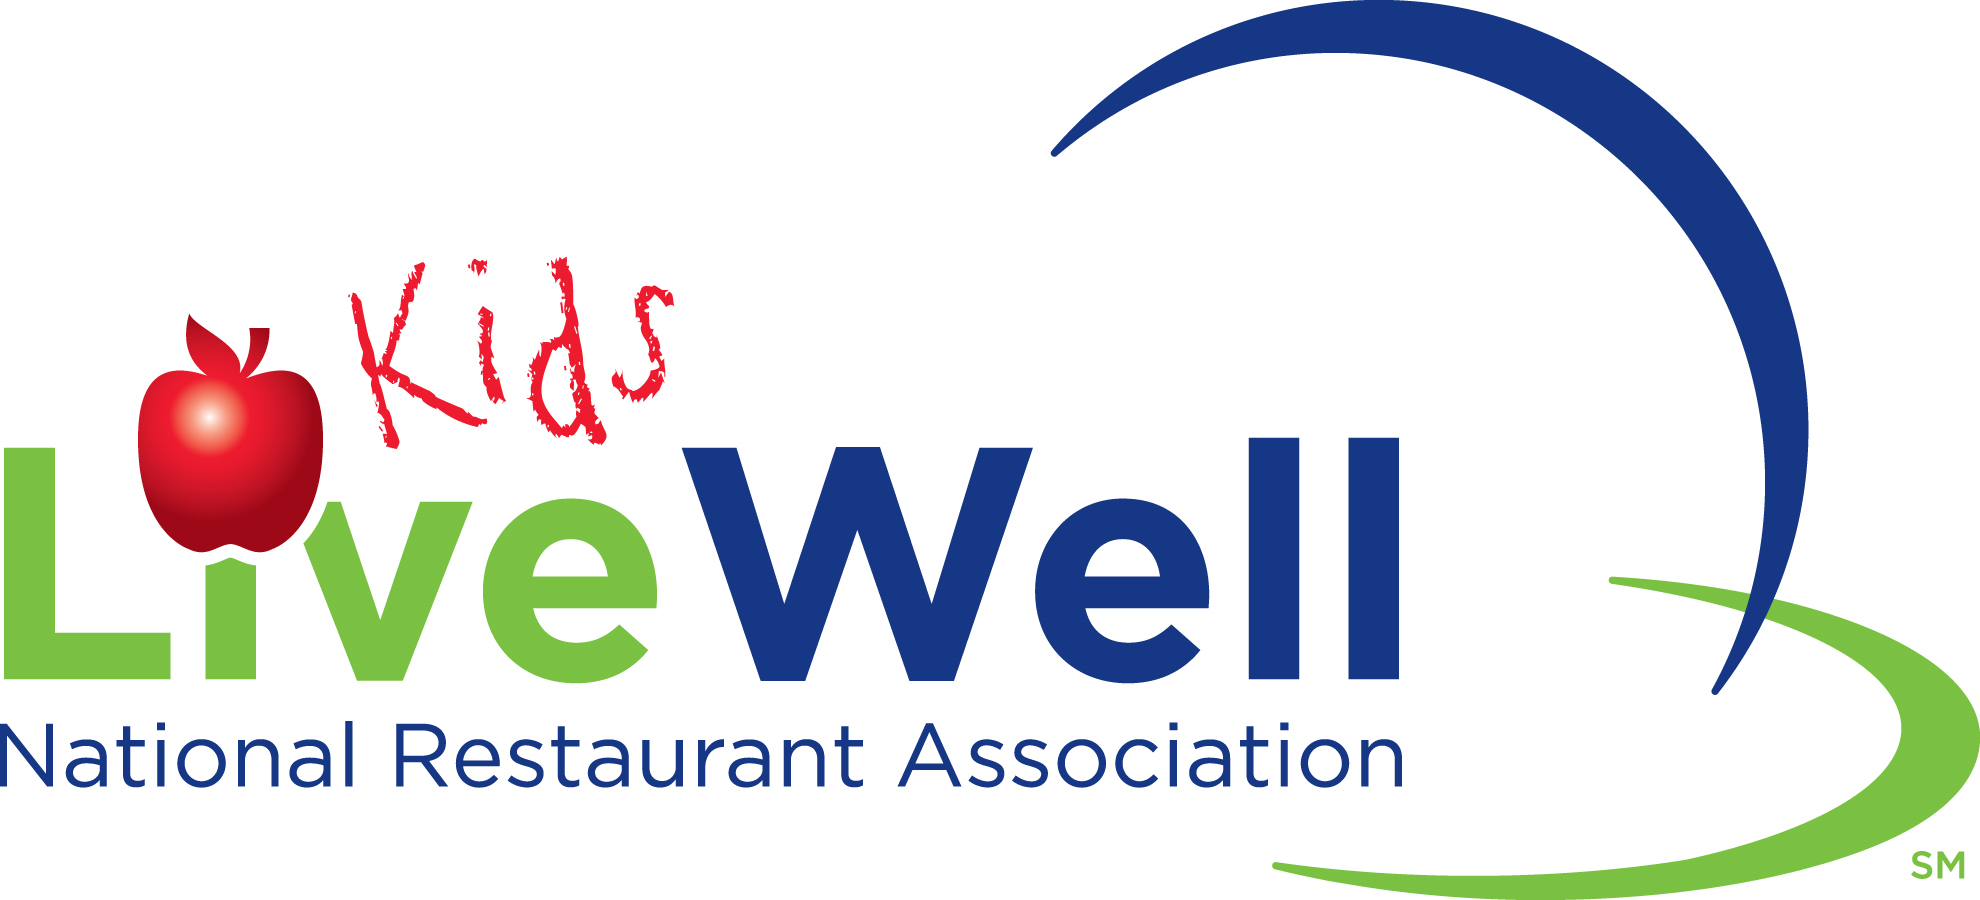 KidsLiveWell National Restaurant Association logo